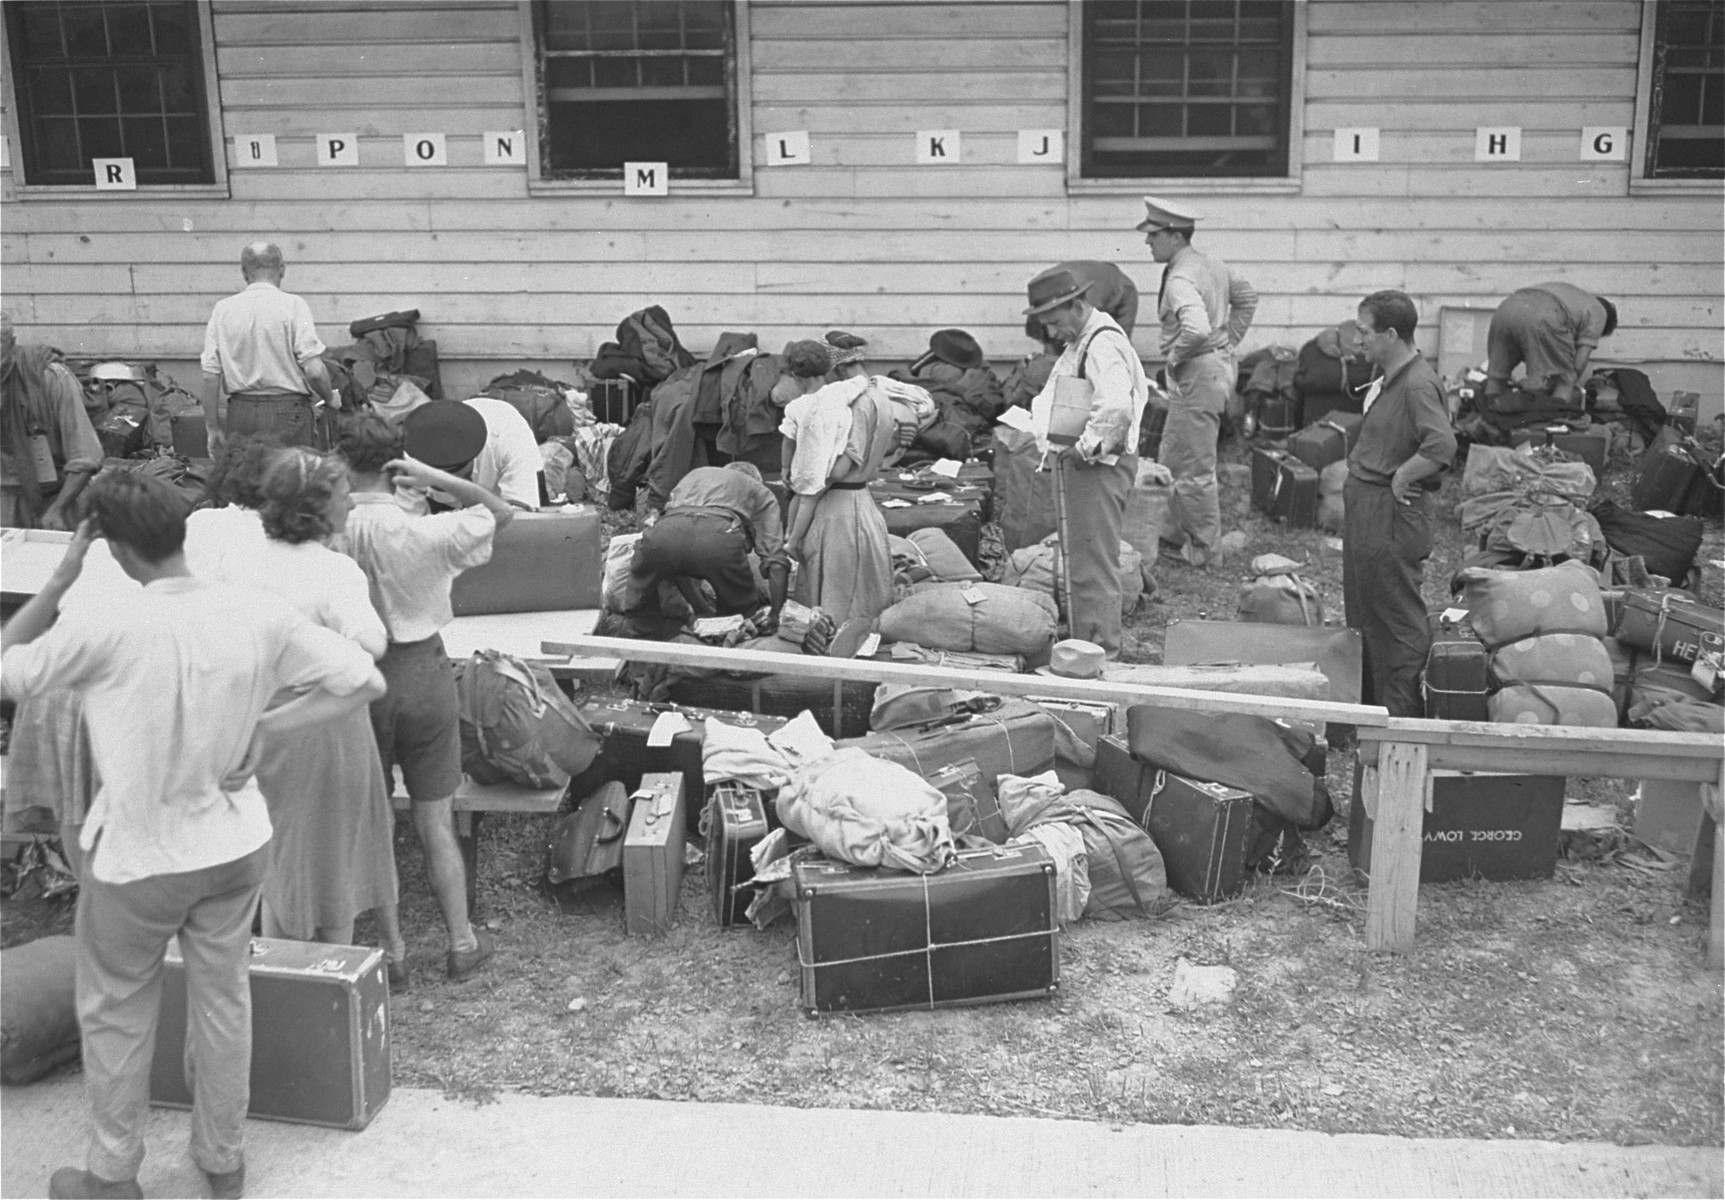 Newly arrived refugees are checked in at the Fort Ontario shelter by representatives of the War Relocation Authority and the U.S. Army; baggage is inspected by U.S. customs officials.